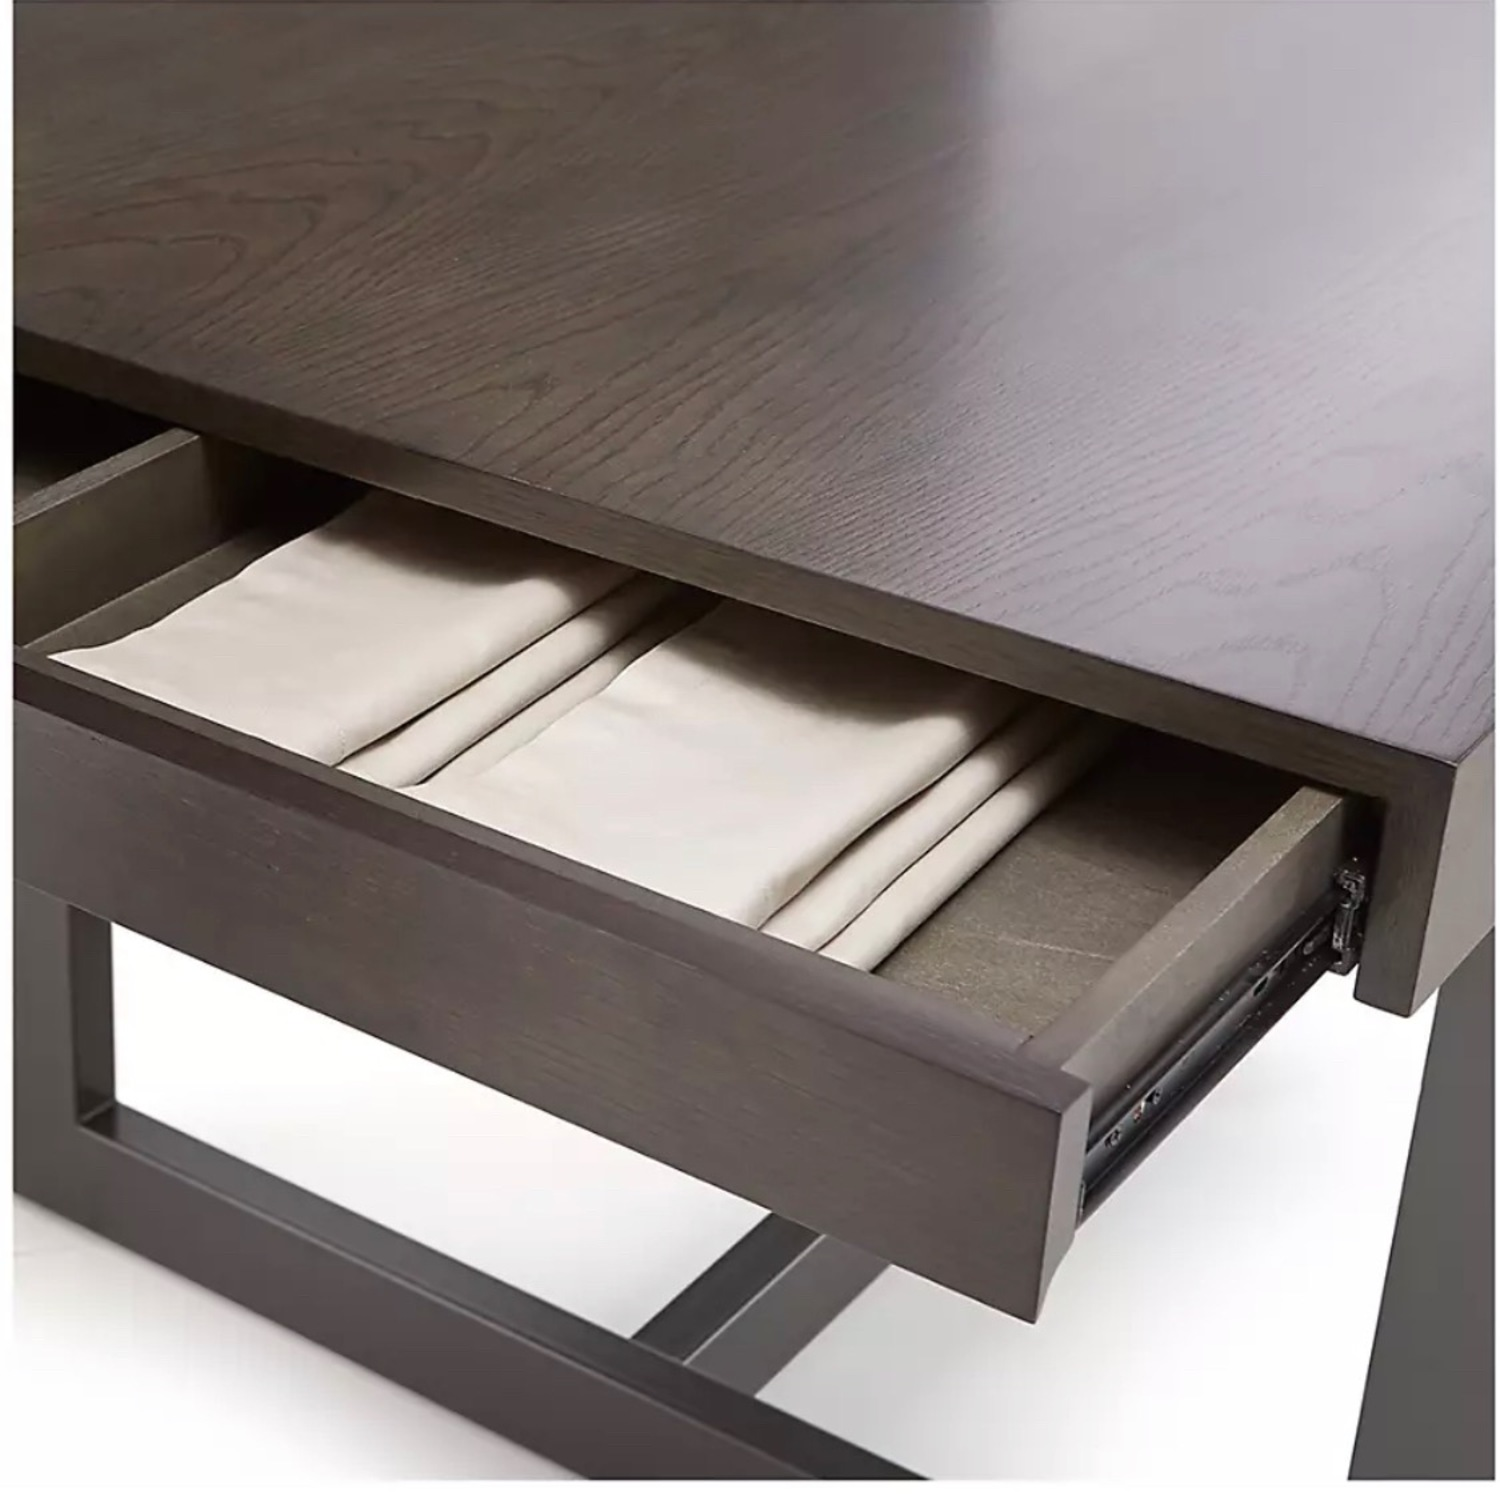 Crate & Barrel Extending Dining Table - image-2